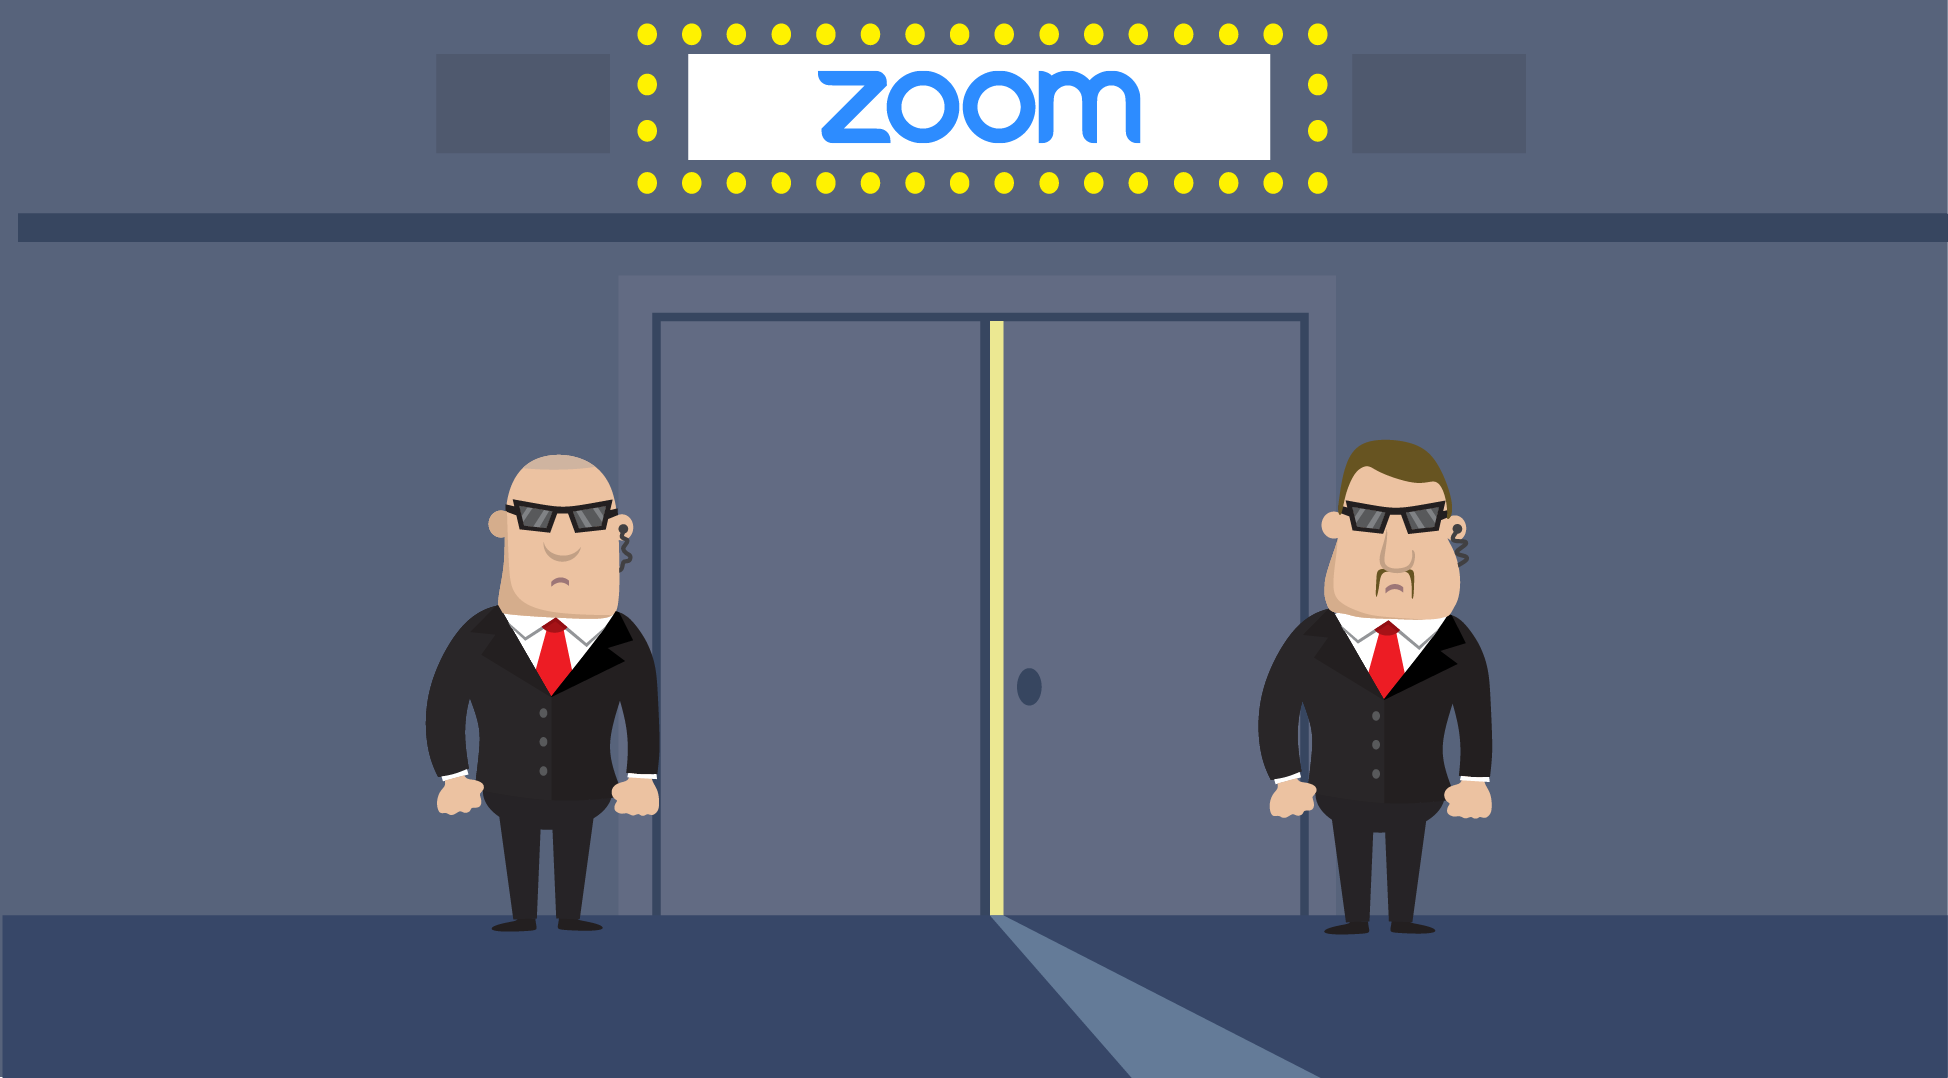 Zoom users take heed to prevent uninvited guests in your meeting rooms